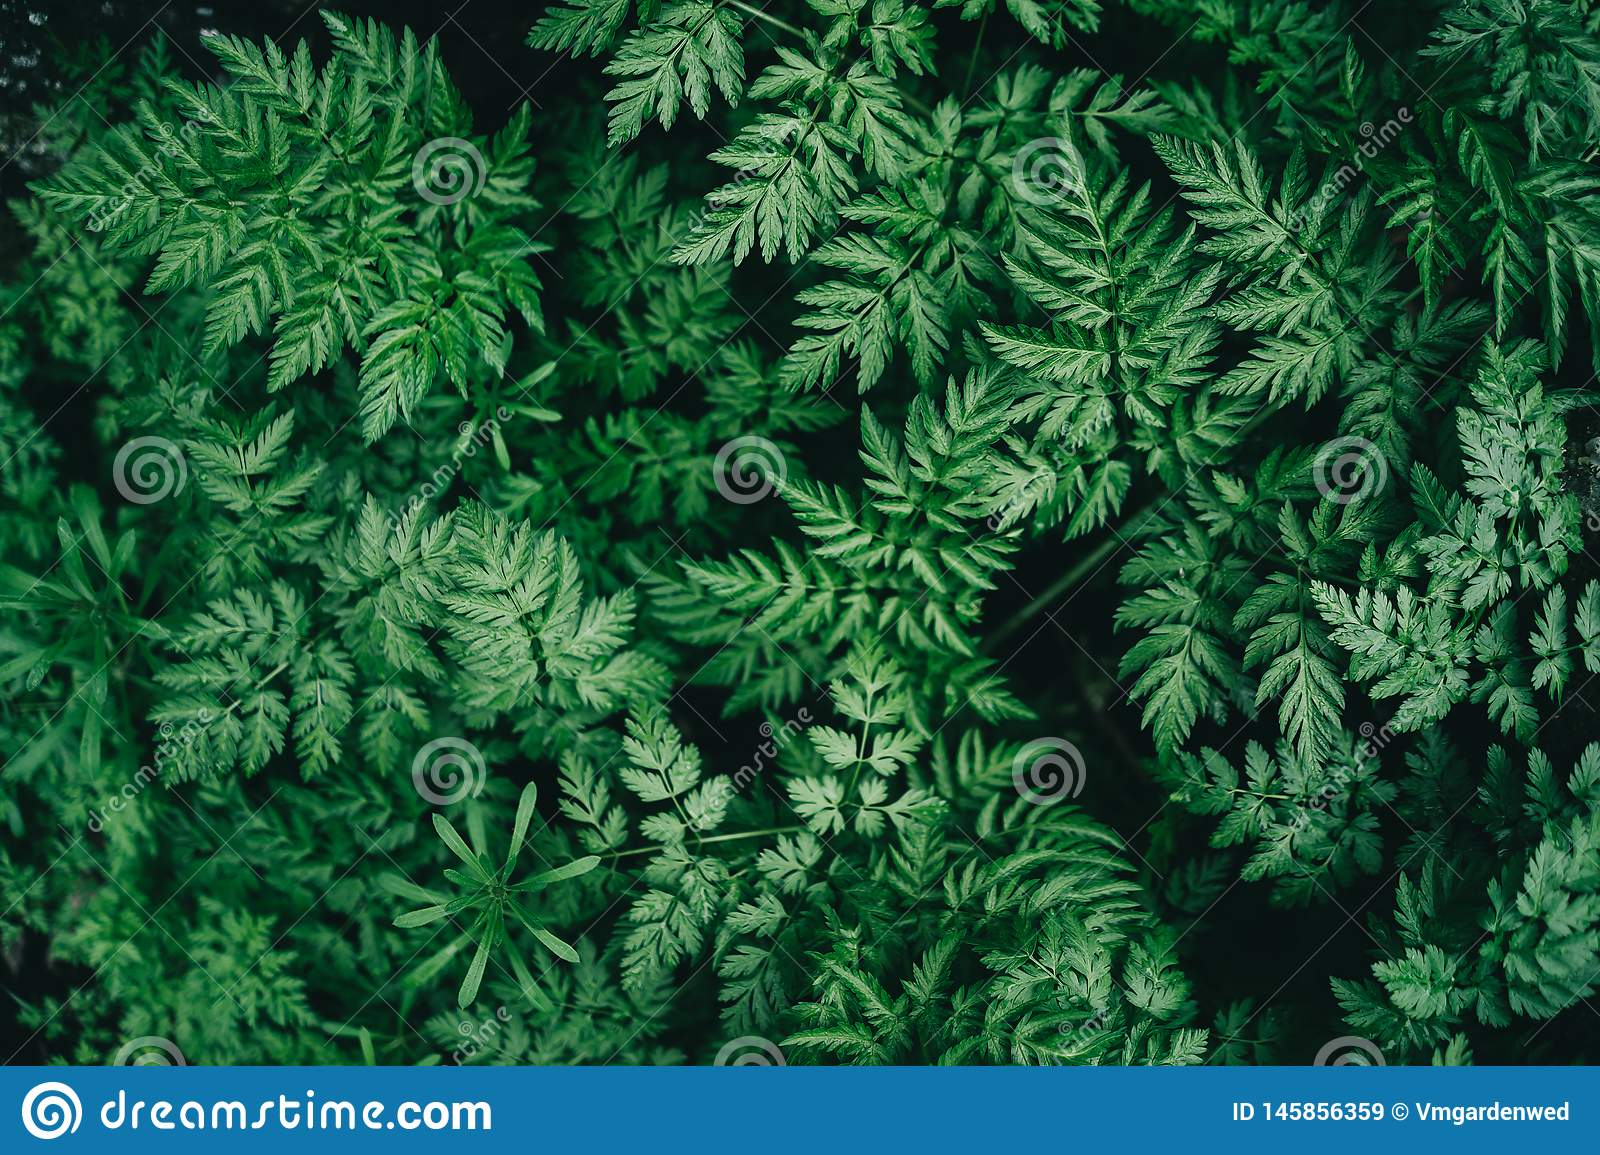 Colorful juicy background with green leaves like fern leaves